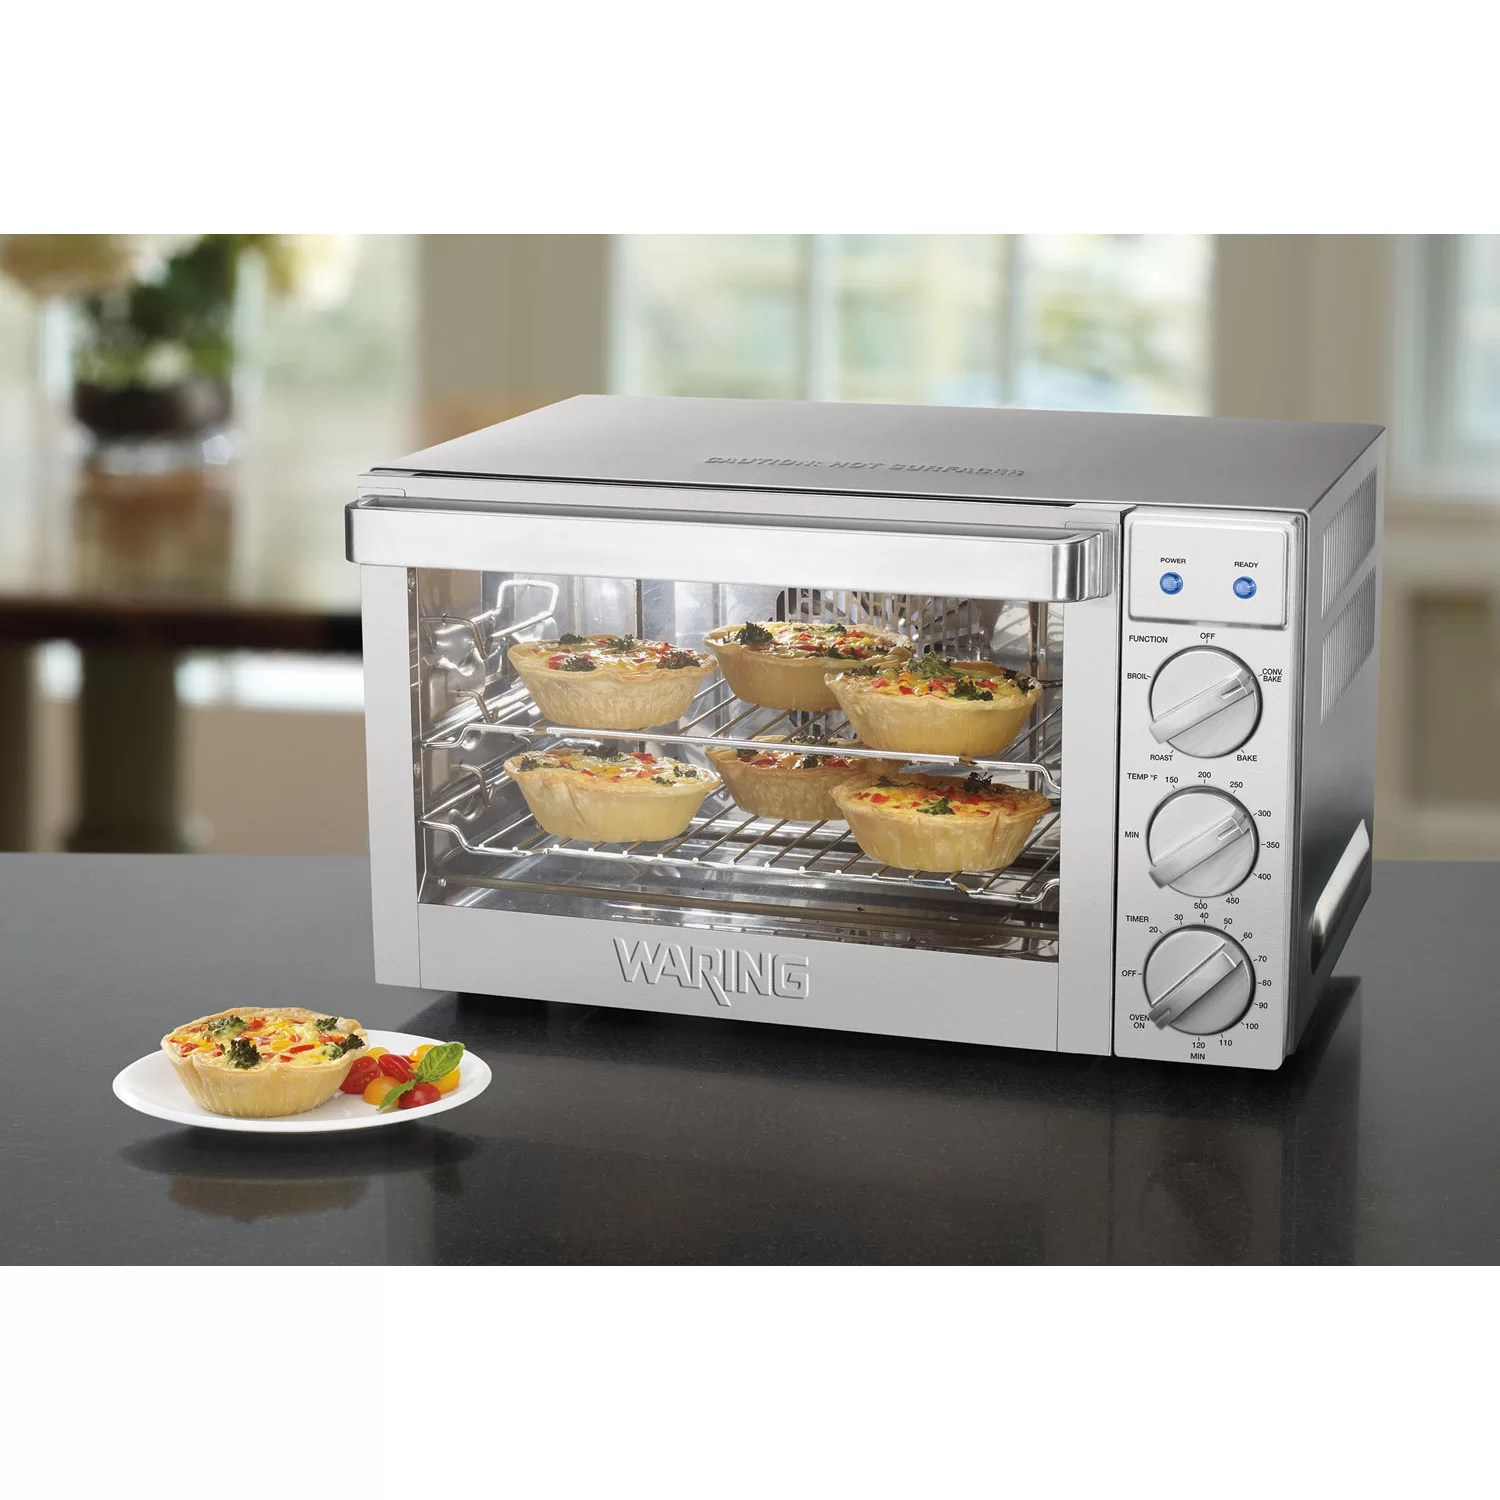 Countertop Commercial Convection Oven Waring 9 Cubic Foot Commercial Countertop Convection